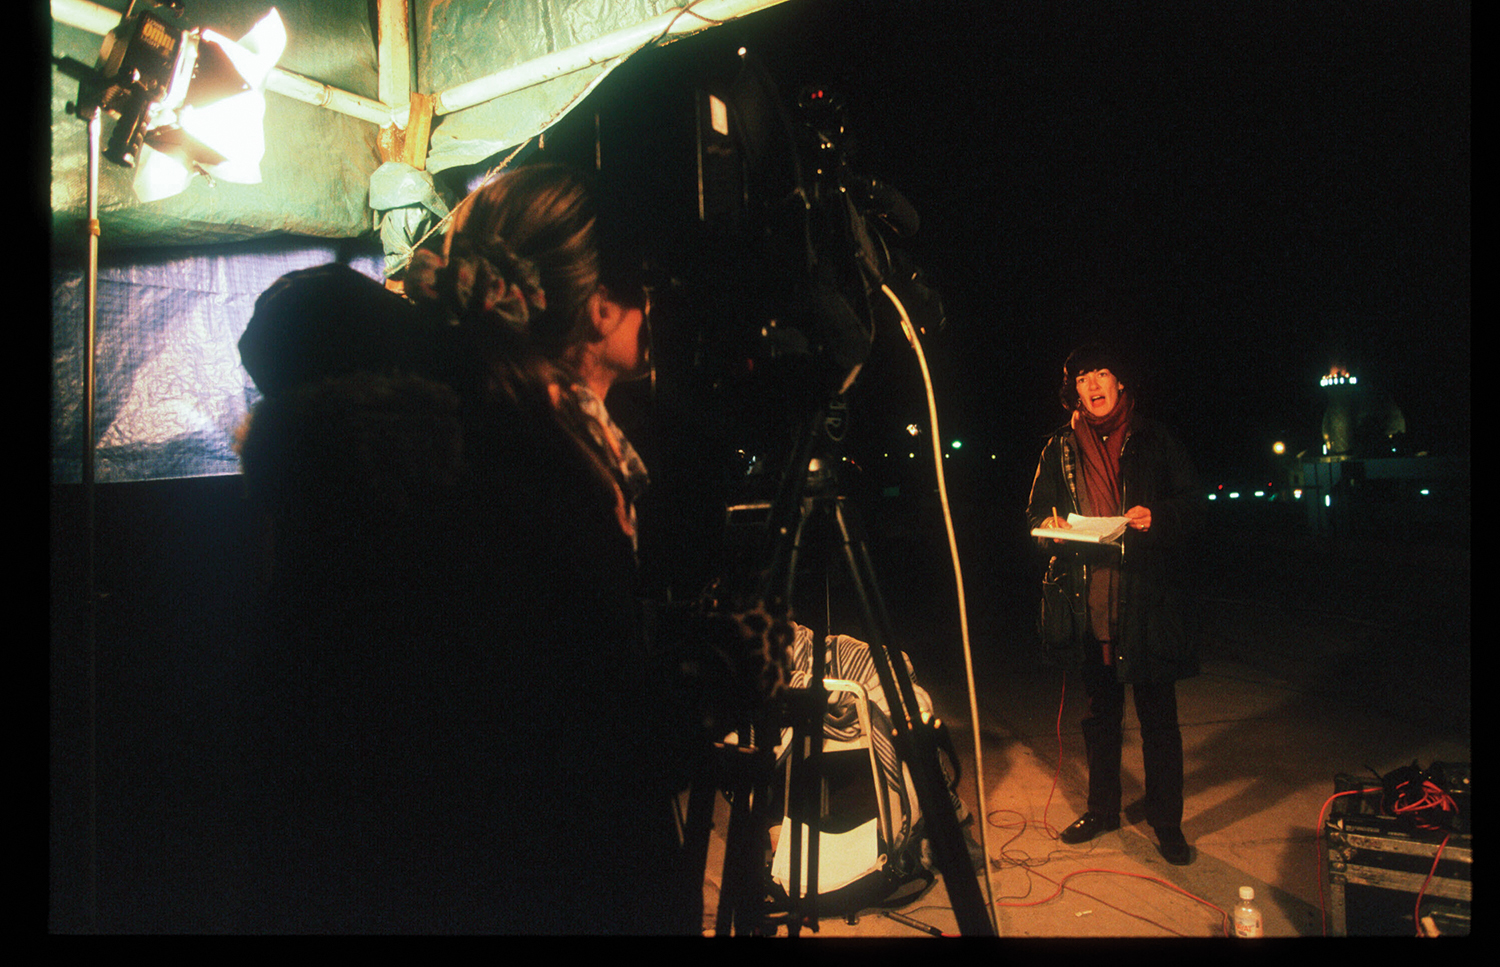 Christiane Amanpour covers a story in Baghdad for CNN on December 20, 1998.